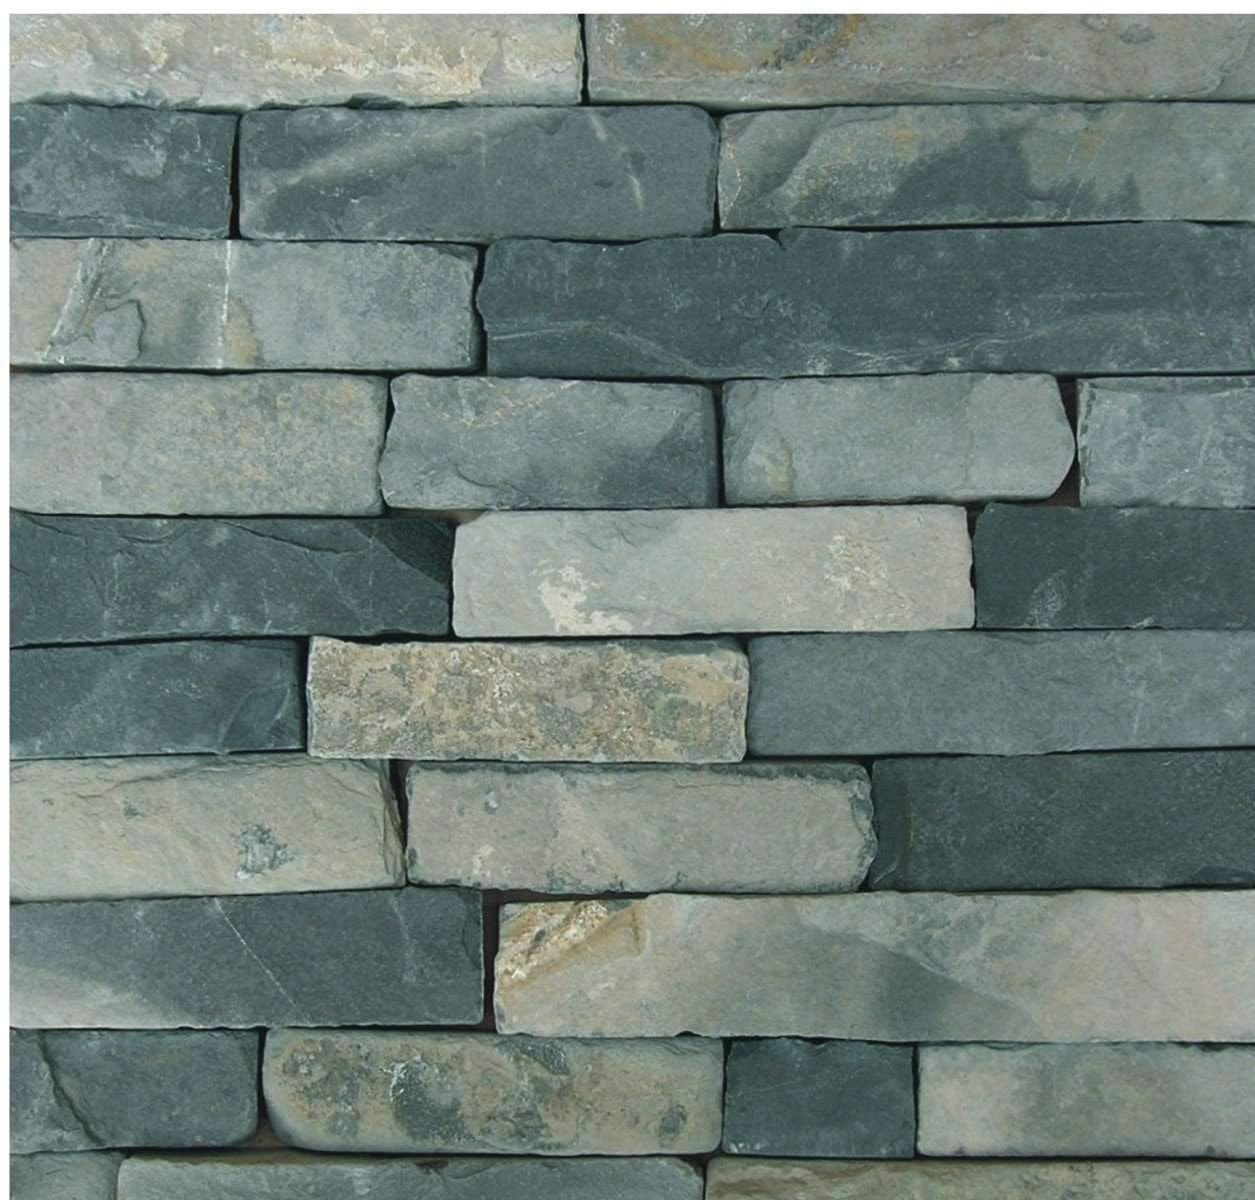 Buffalo - European Stackstone cheap stone veneer clearance - Discount Stones wholesale stone veneer, cheap brick veneer, cultured stone for sale